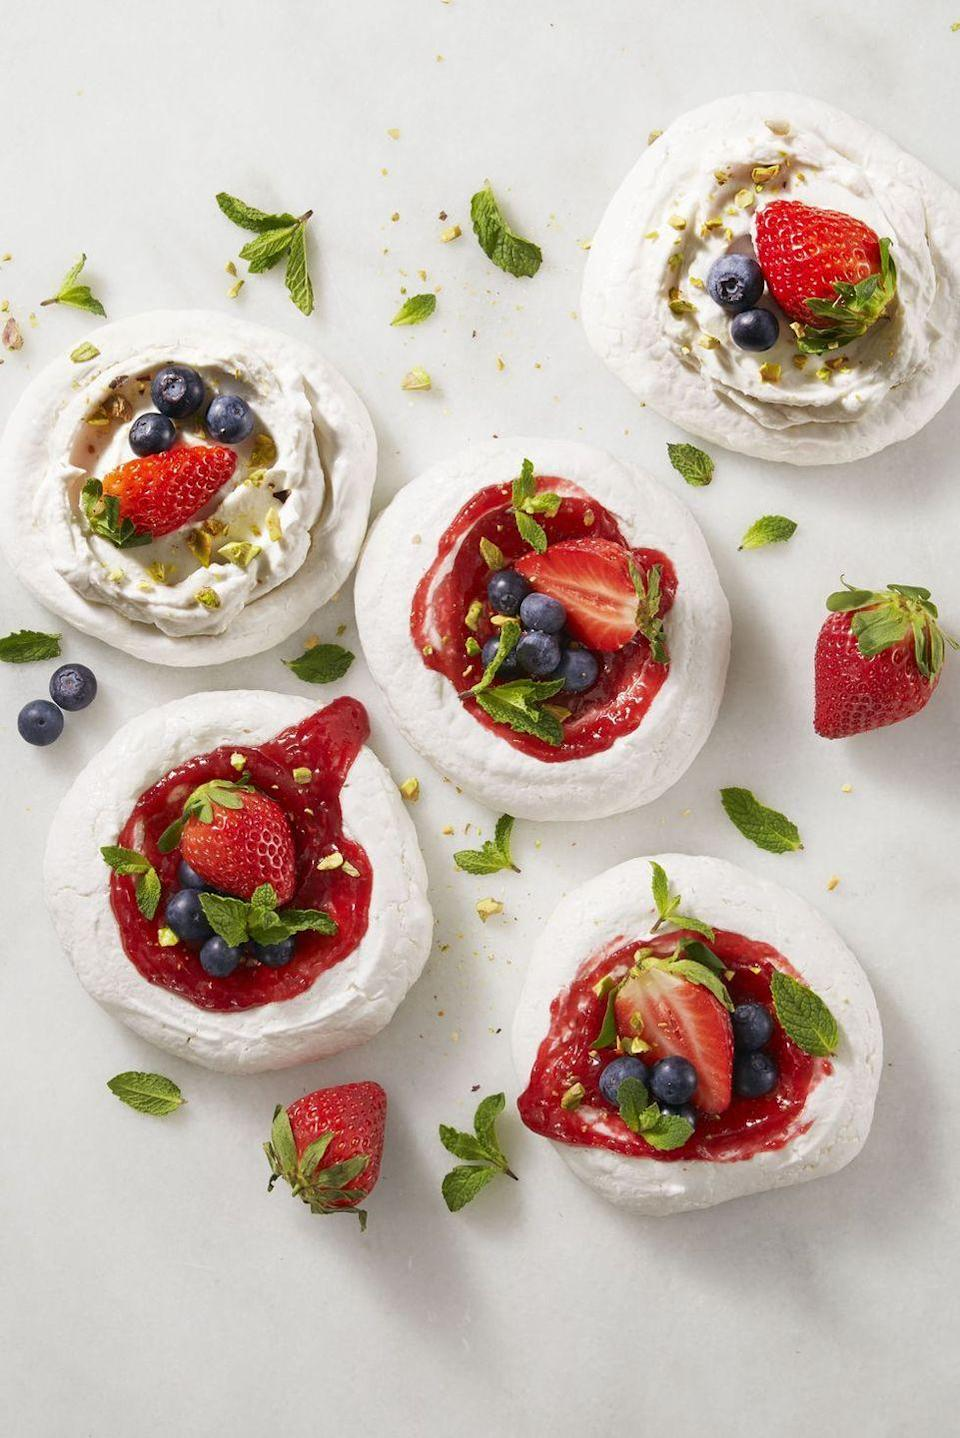 "<p>Save the eggs for dyeing and decorating: This recipe uses chickpeas instead, which makes it 100% vegan. </p><p><em><a href=""https://www.goodhousekeeping.com/food-recipes/a38871/magic-mini-pavlovas-recipe/"" rel=""nofollow noopener"" target=""_blank"" data-ylk=""slk:Get the recipe for Magic Mini Pavlovas »"" class=""link rapid-noclick-resp"">Get the recipe for Magic Mini Pavlovas » </a></em> </p>"